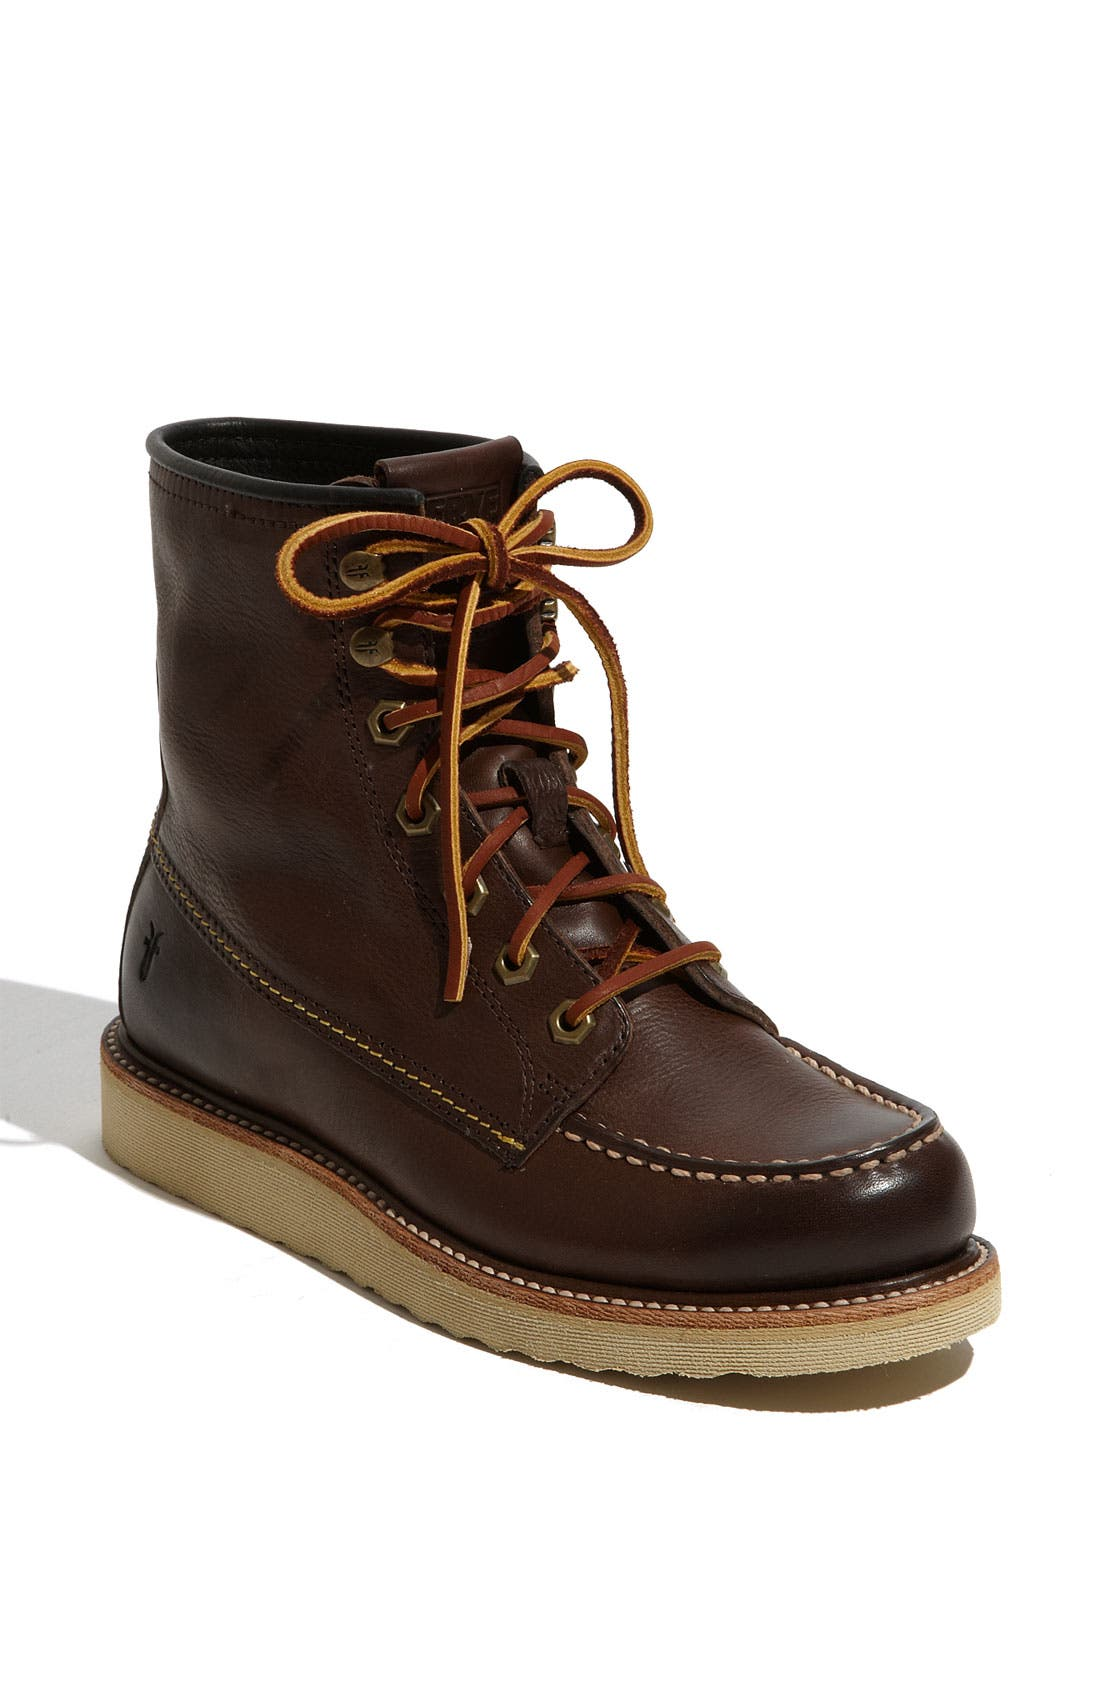 Alternate Image 1 Selected - Frye 'Dakota' Wedge Boot